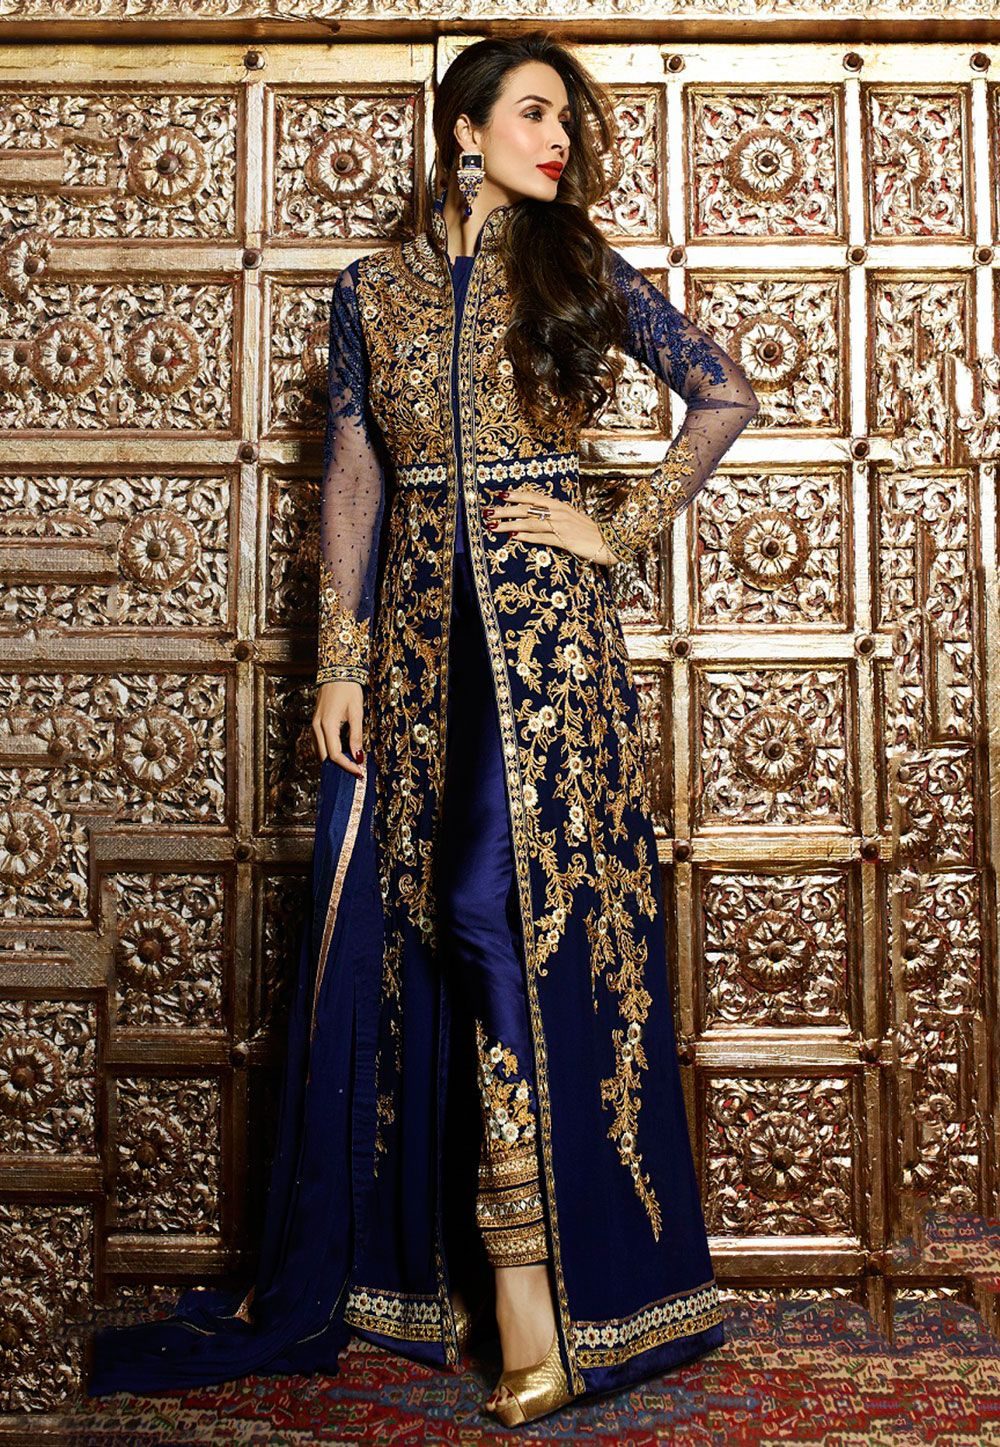 aa96b55182 Suit in Navy #Blue   Abayas   Bollywood suits, Abaya fashion, Dresses